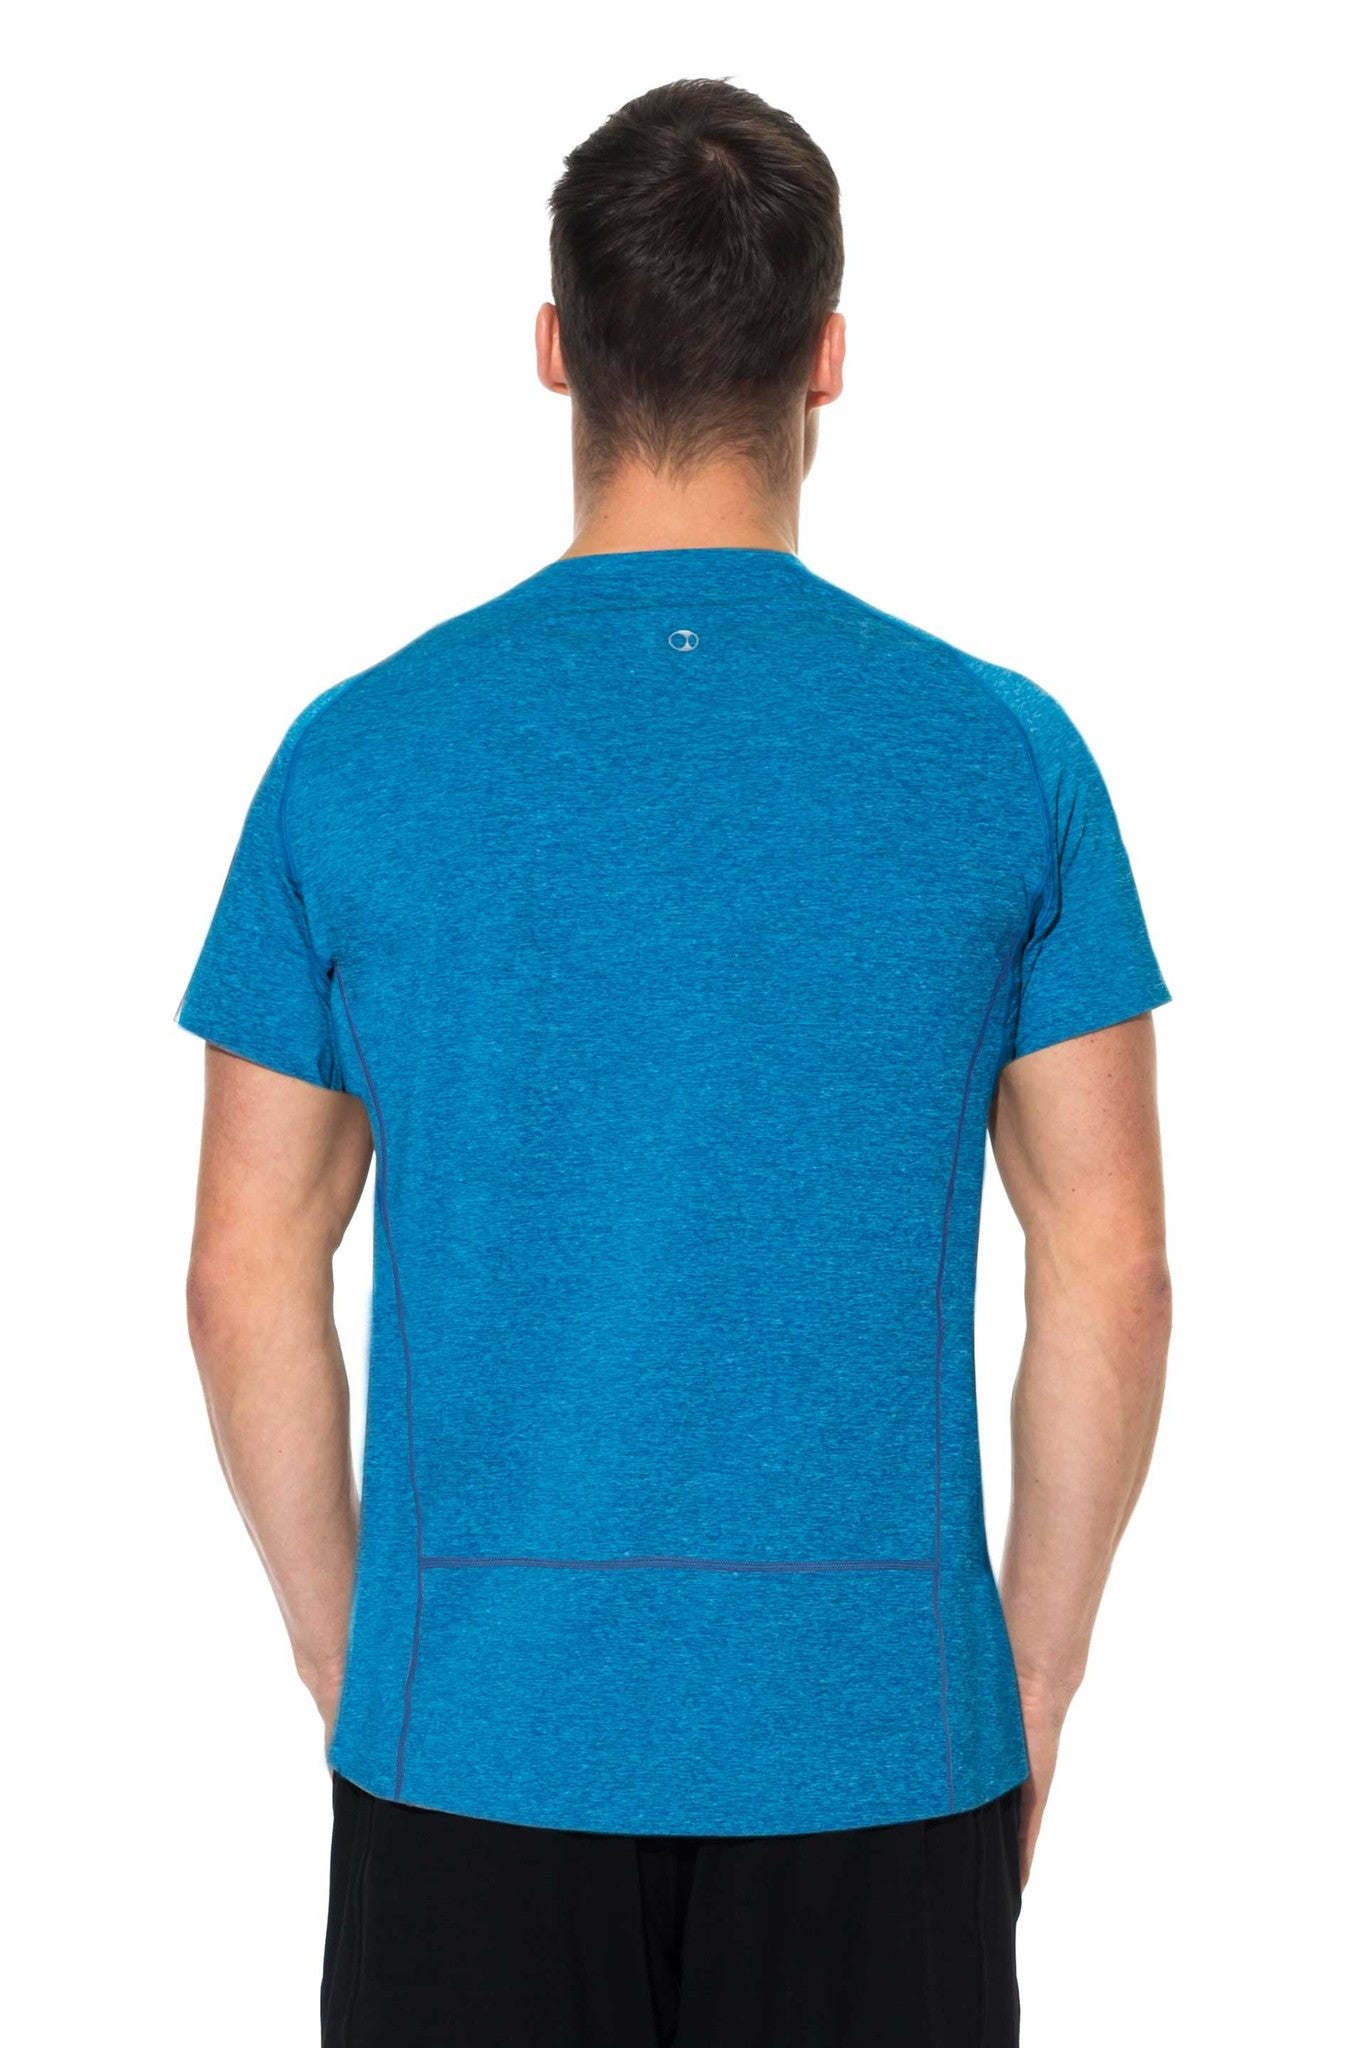 CORE T-SHIRT - OCEAN - ( SIZES: S )